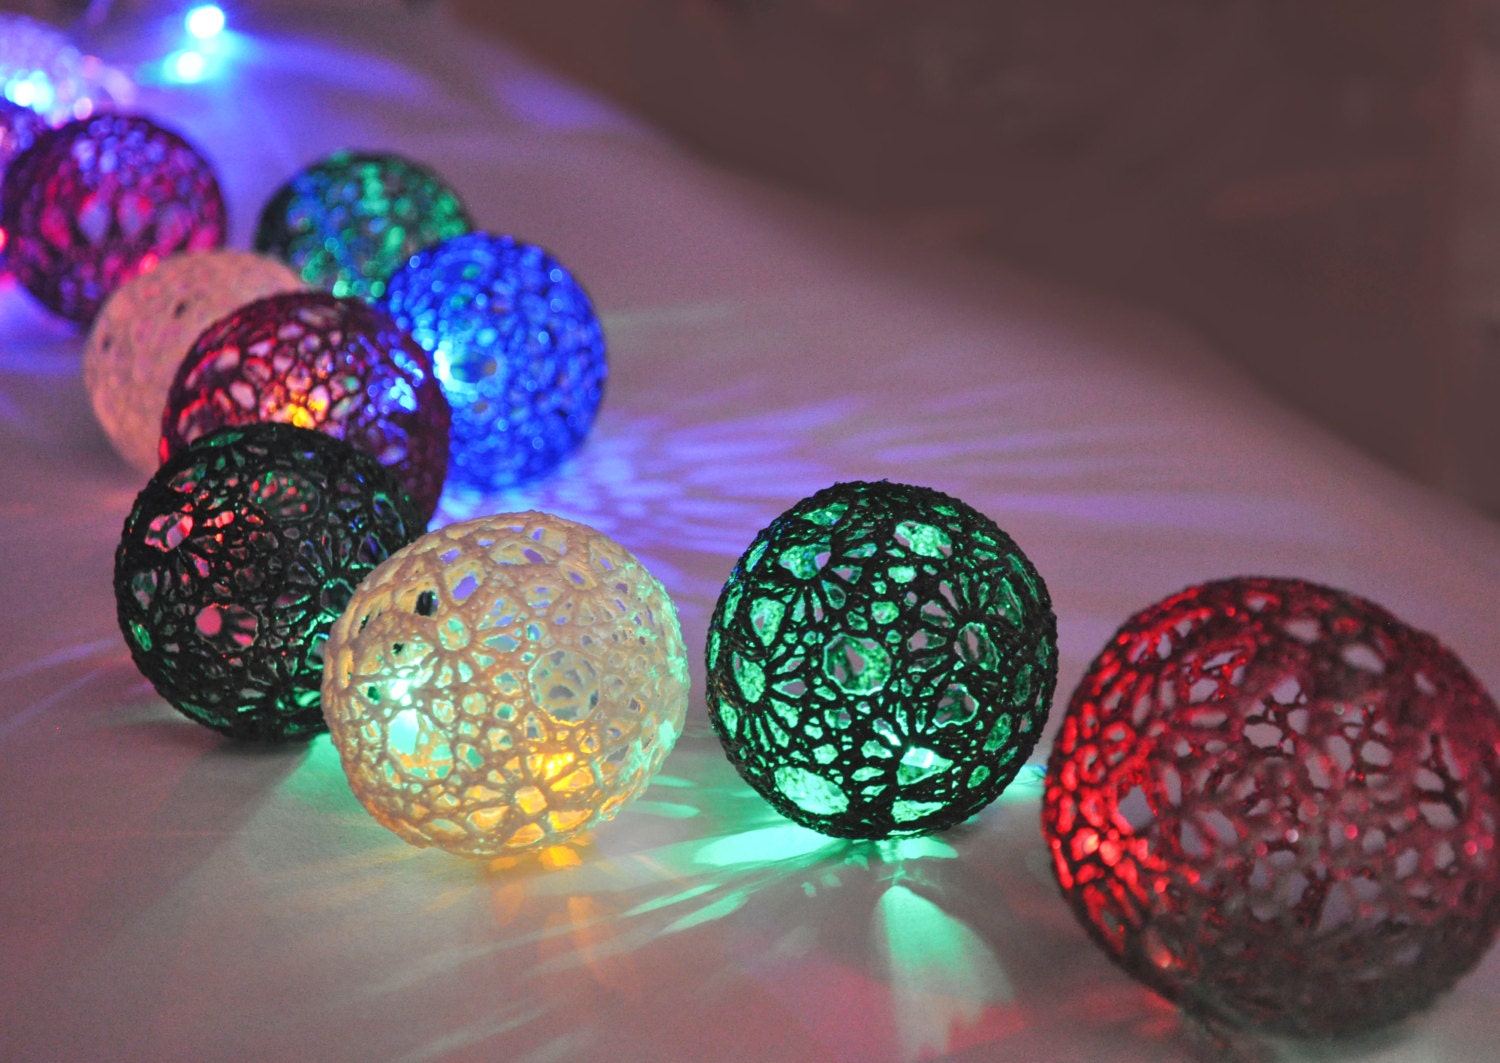 Night Lamps For Bedroom Christmas Lights Night Lights Bedroom Decor Lamps Fairy